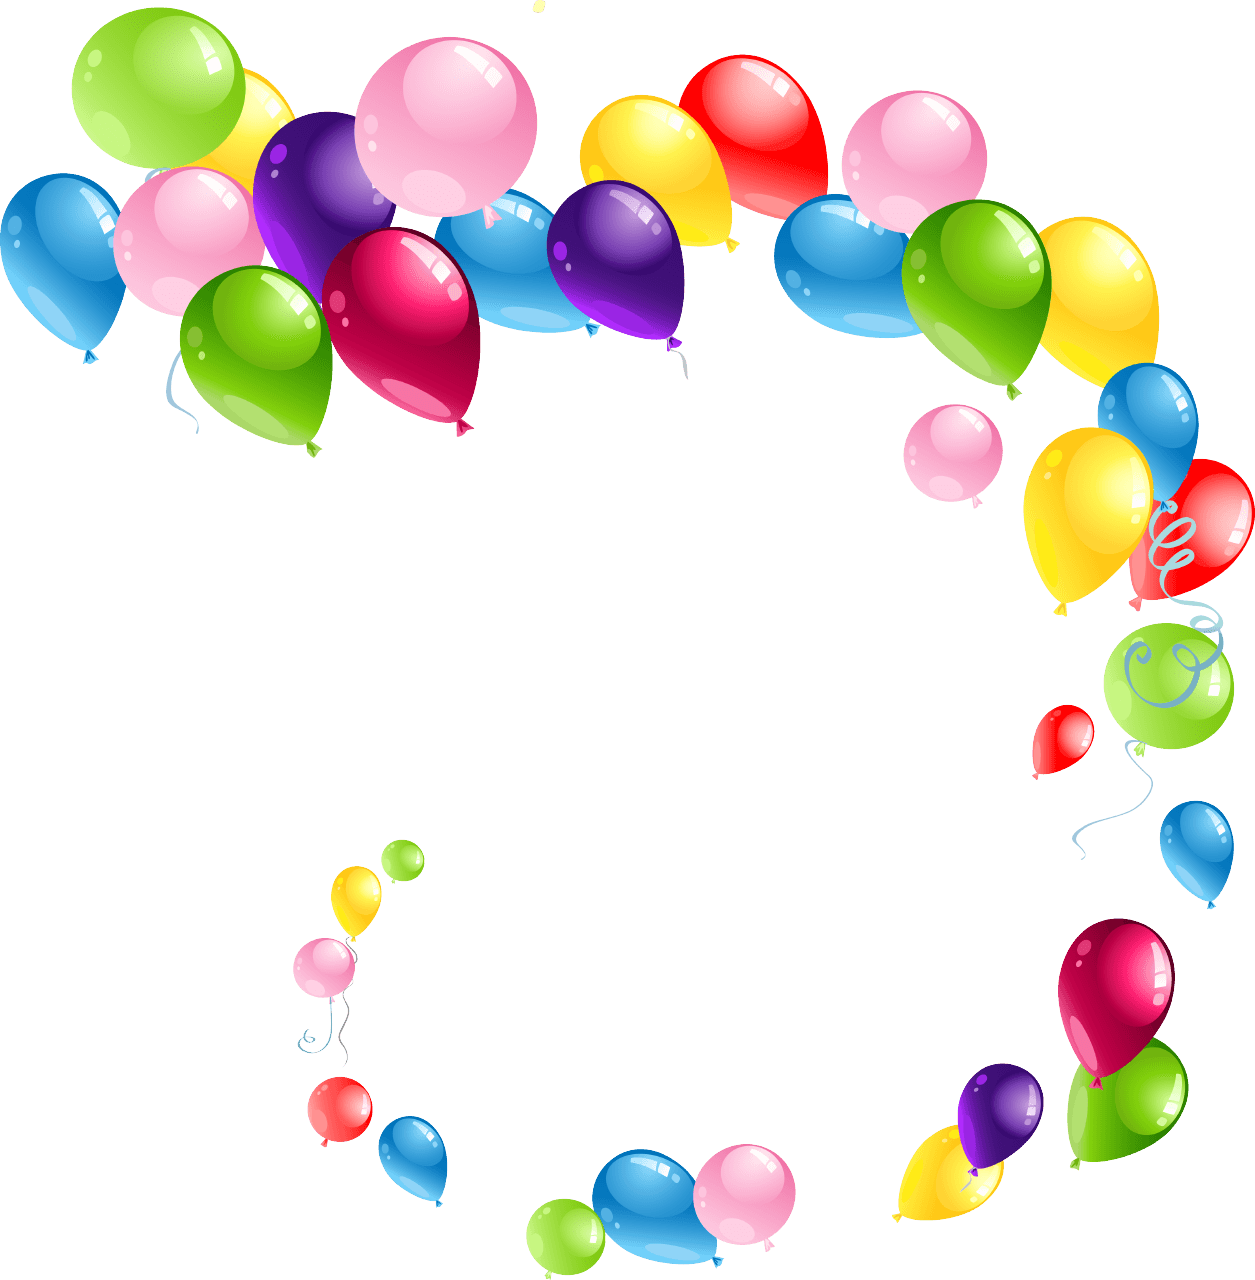 Balloon png transparent background. Flying spiral balloons stickpng